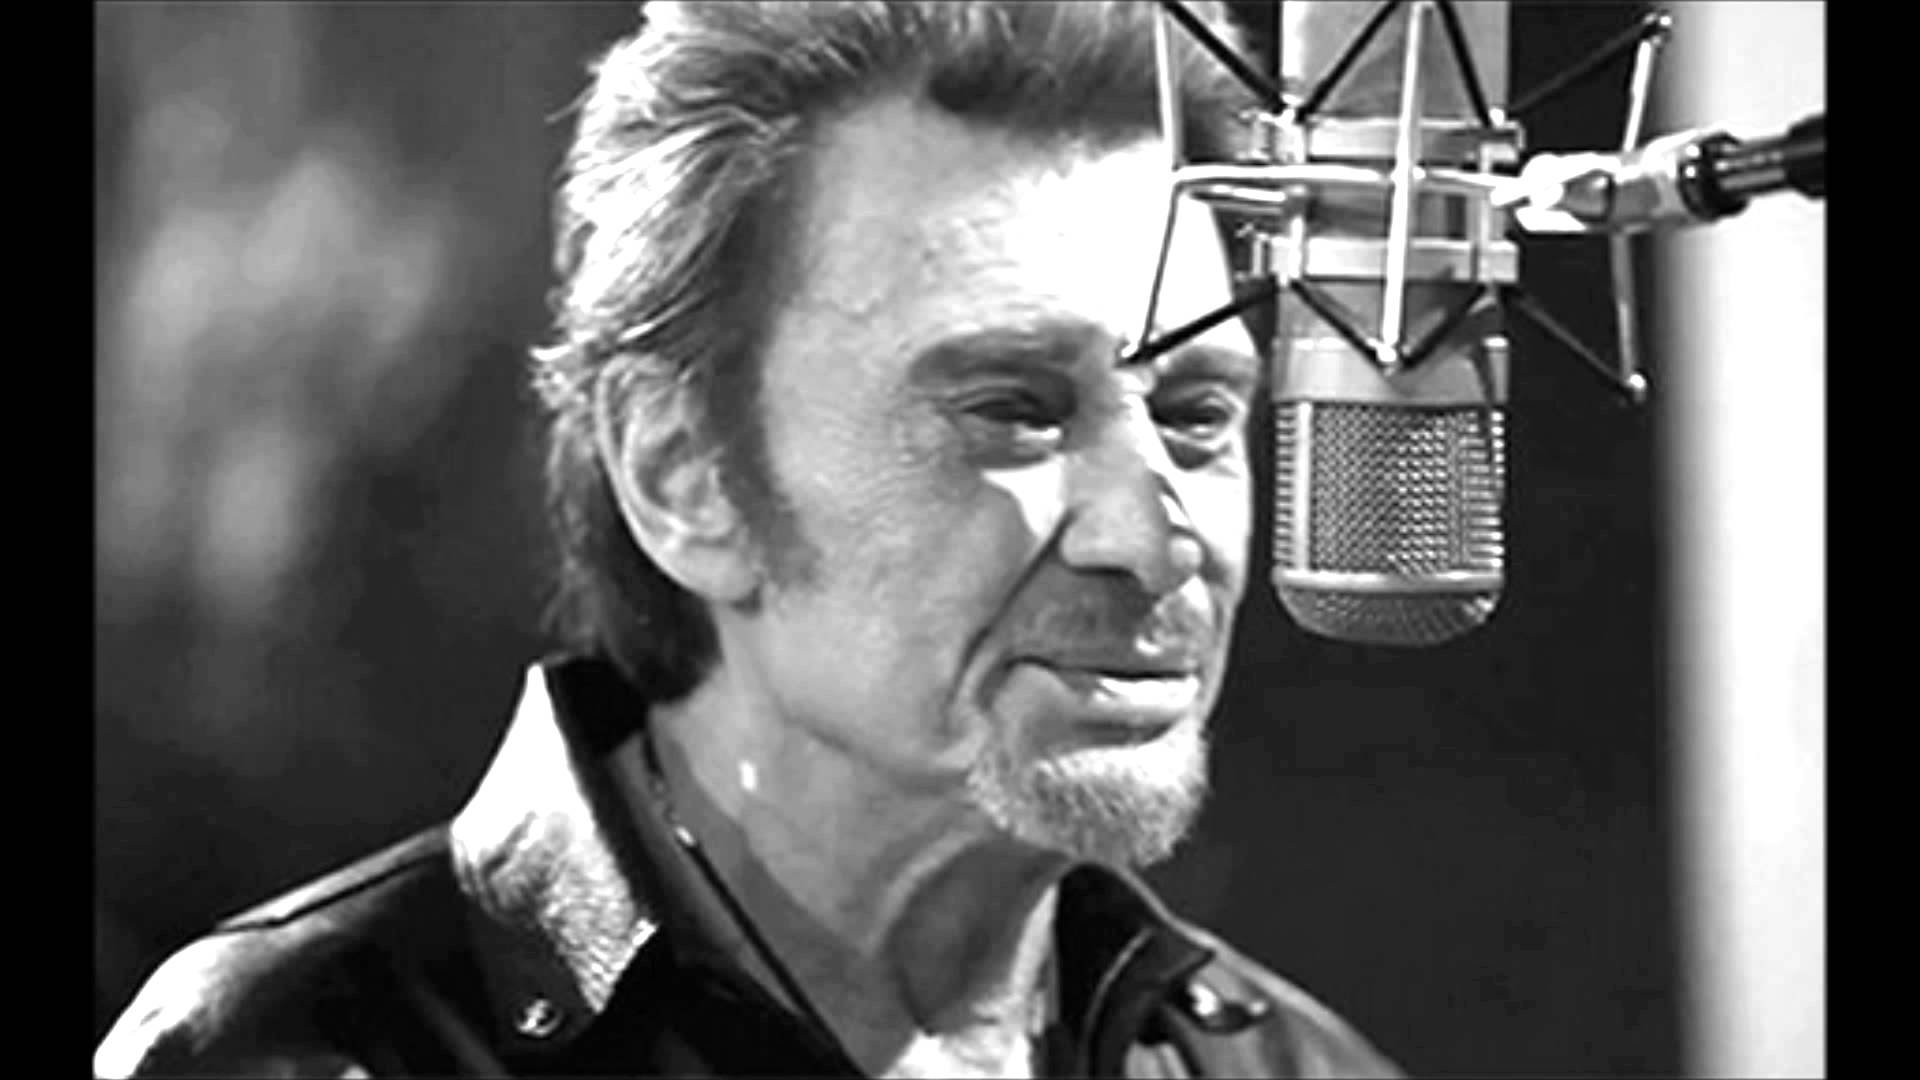 maxresdefault 11 1024x576 - Johnny Hallyday : 10 chansons mémorables